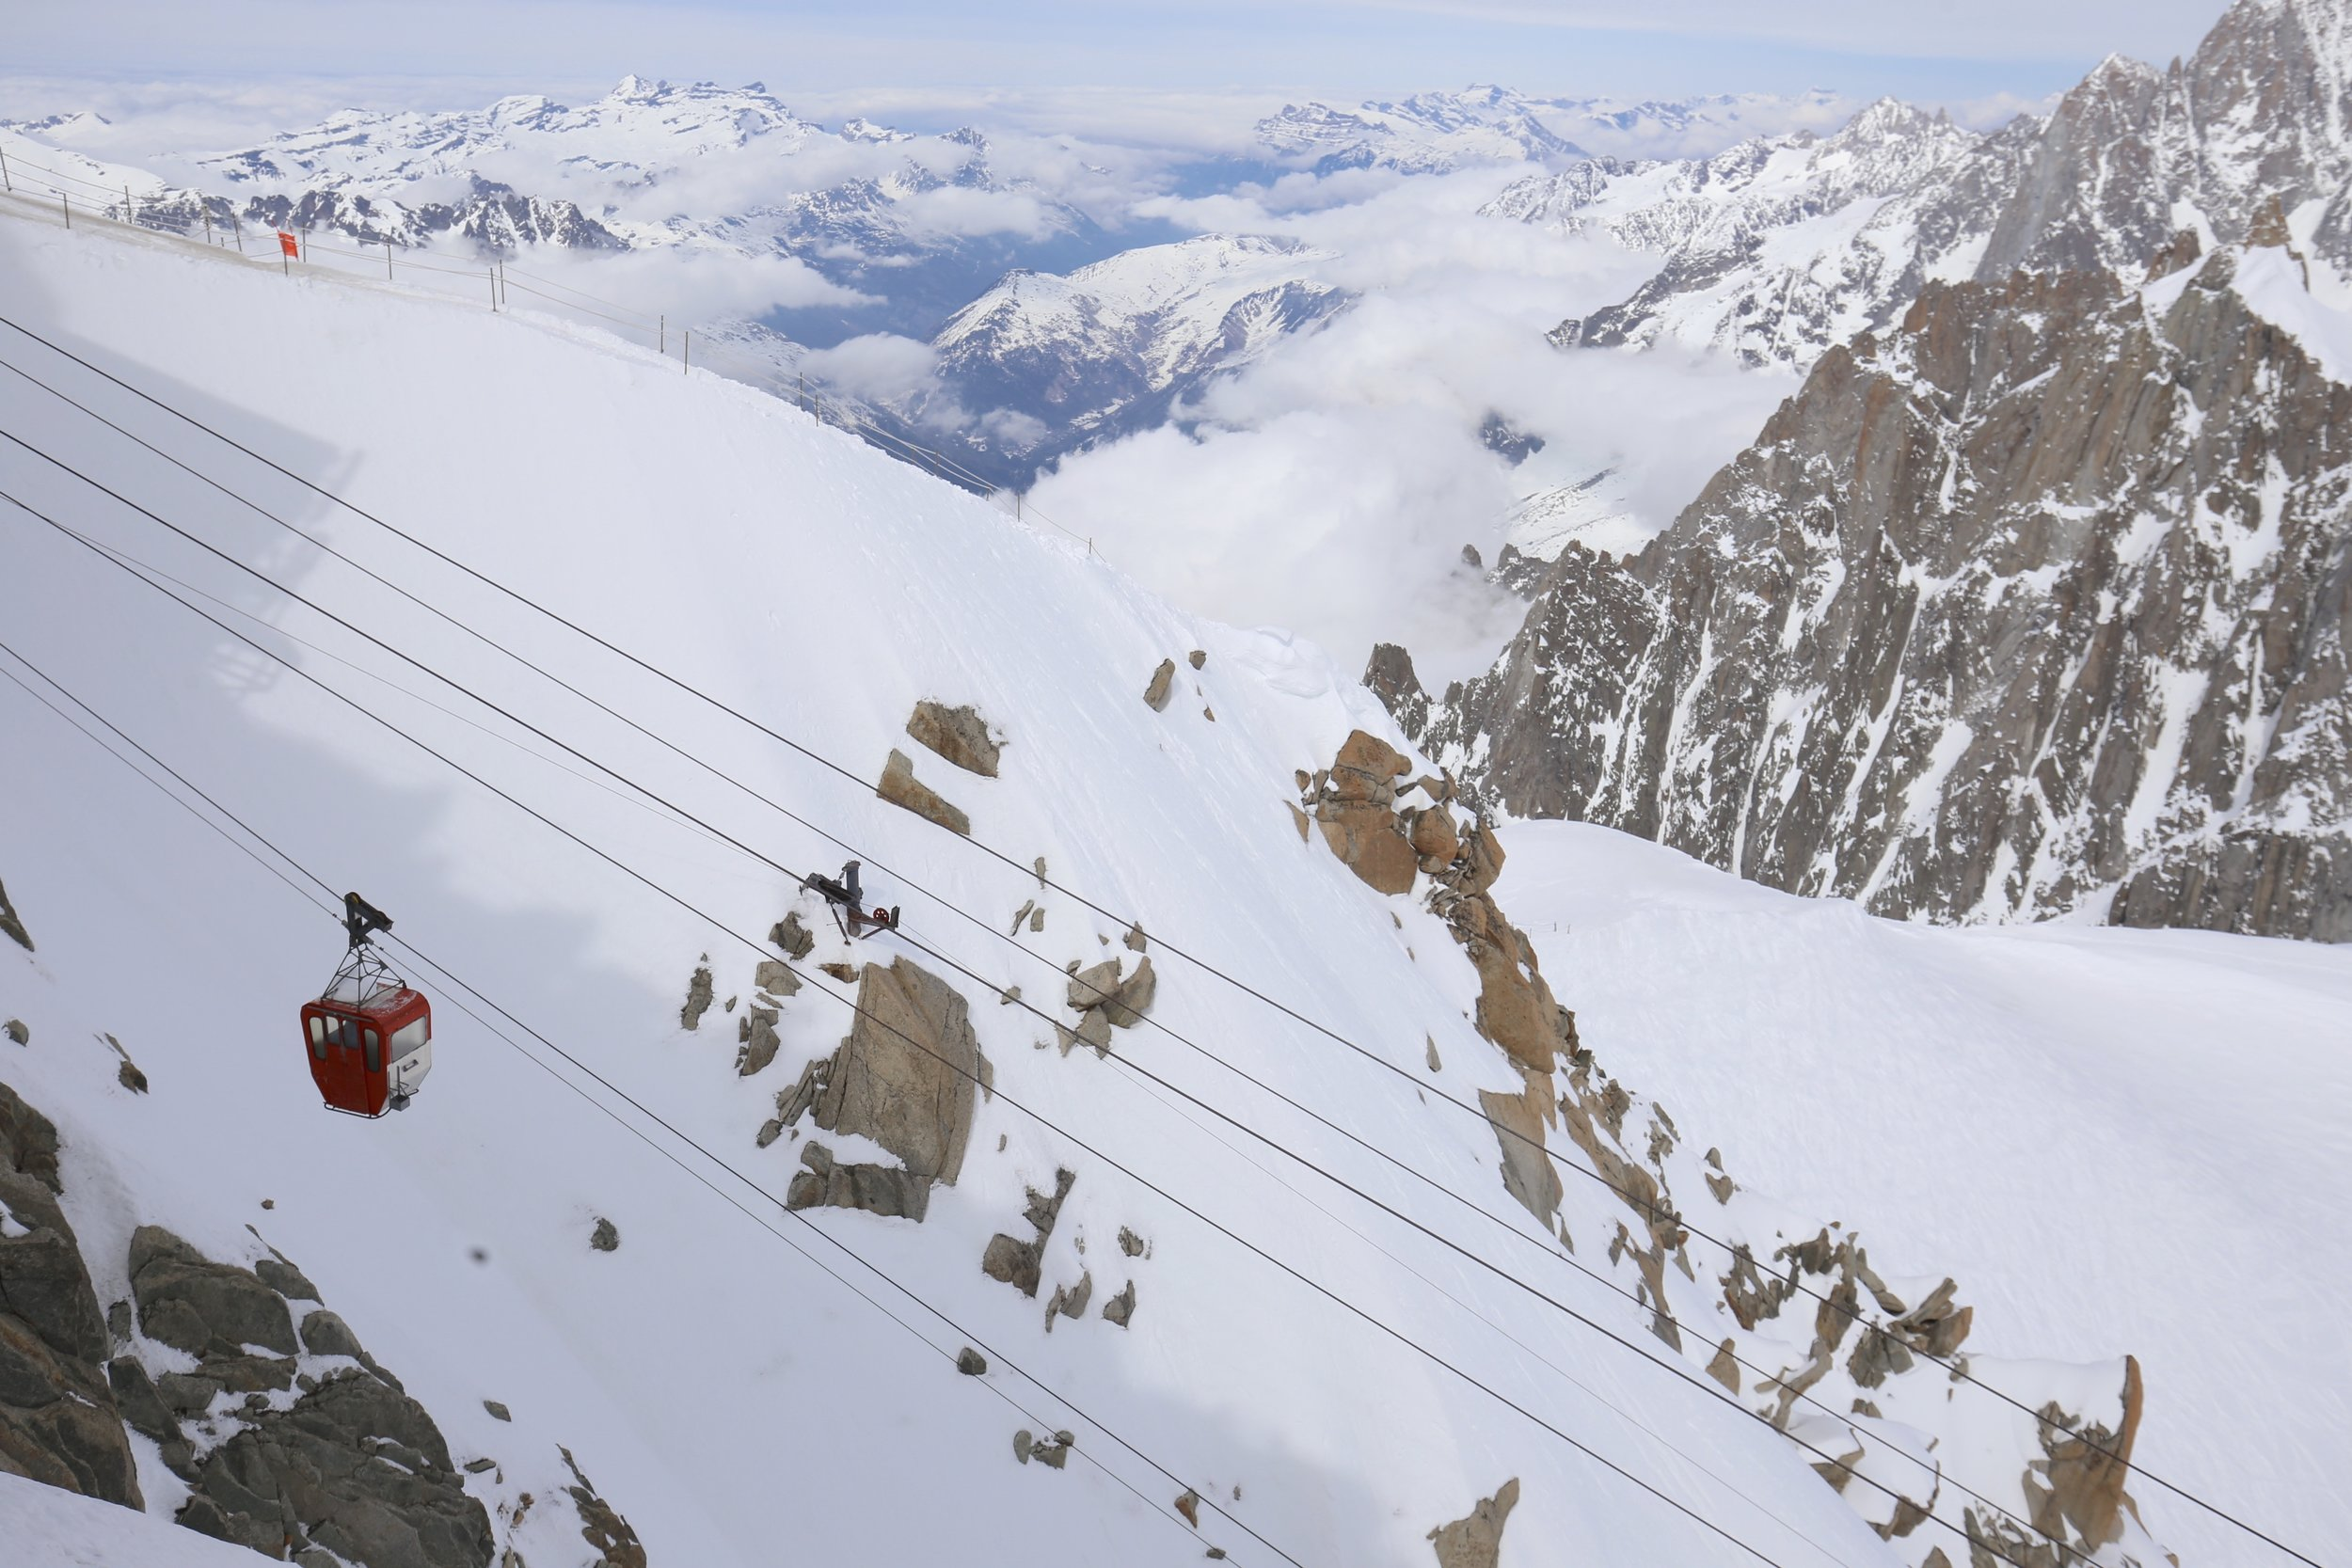 The old chairlift to Aiguille du Midi.